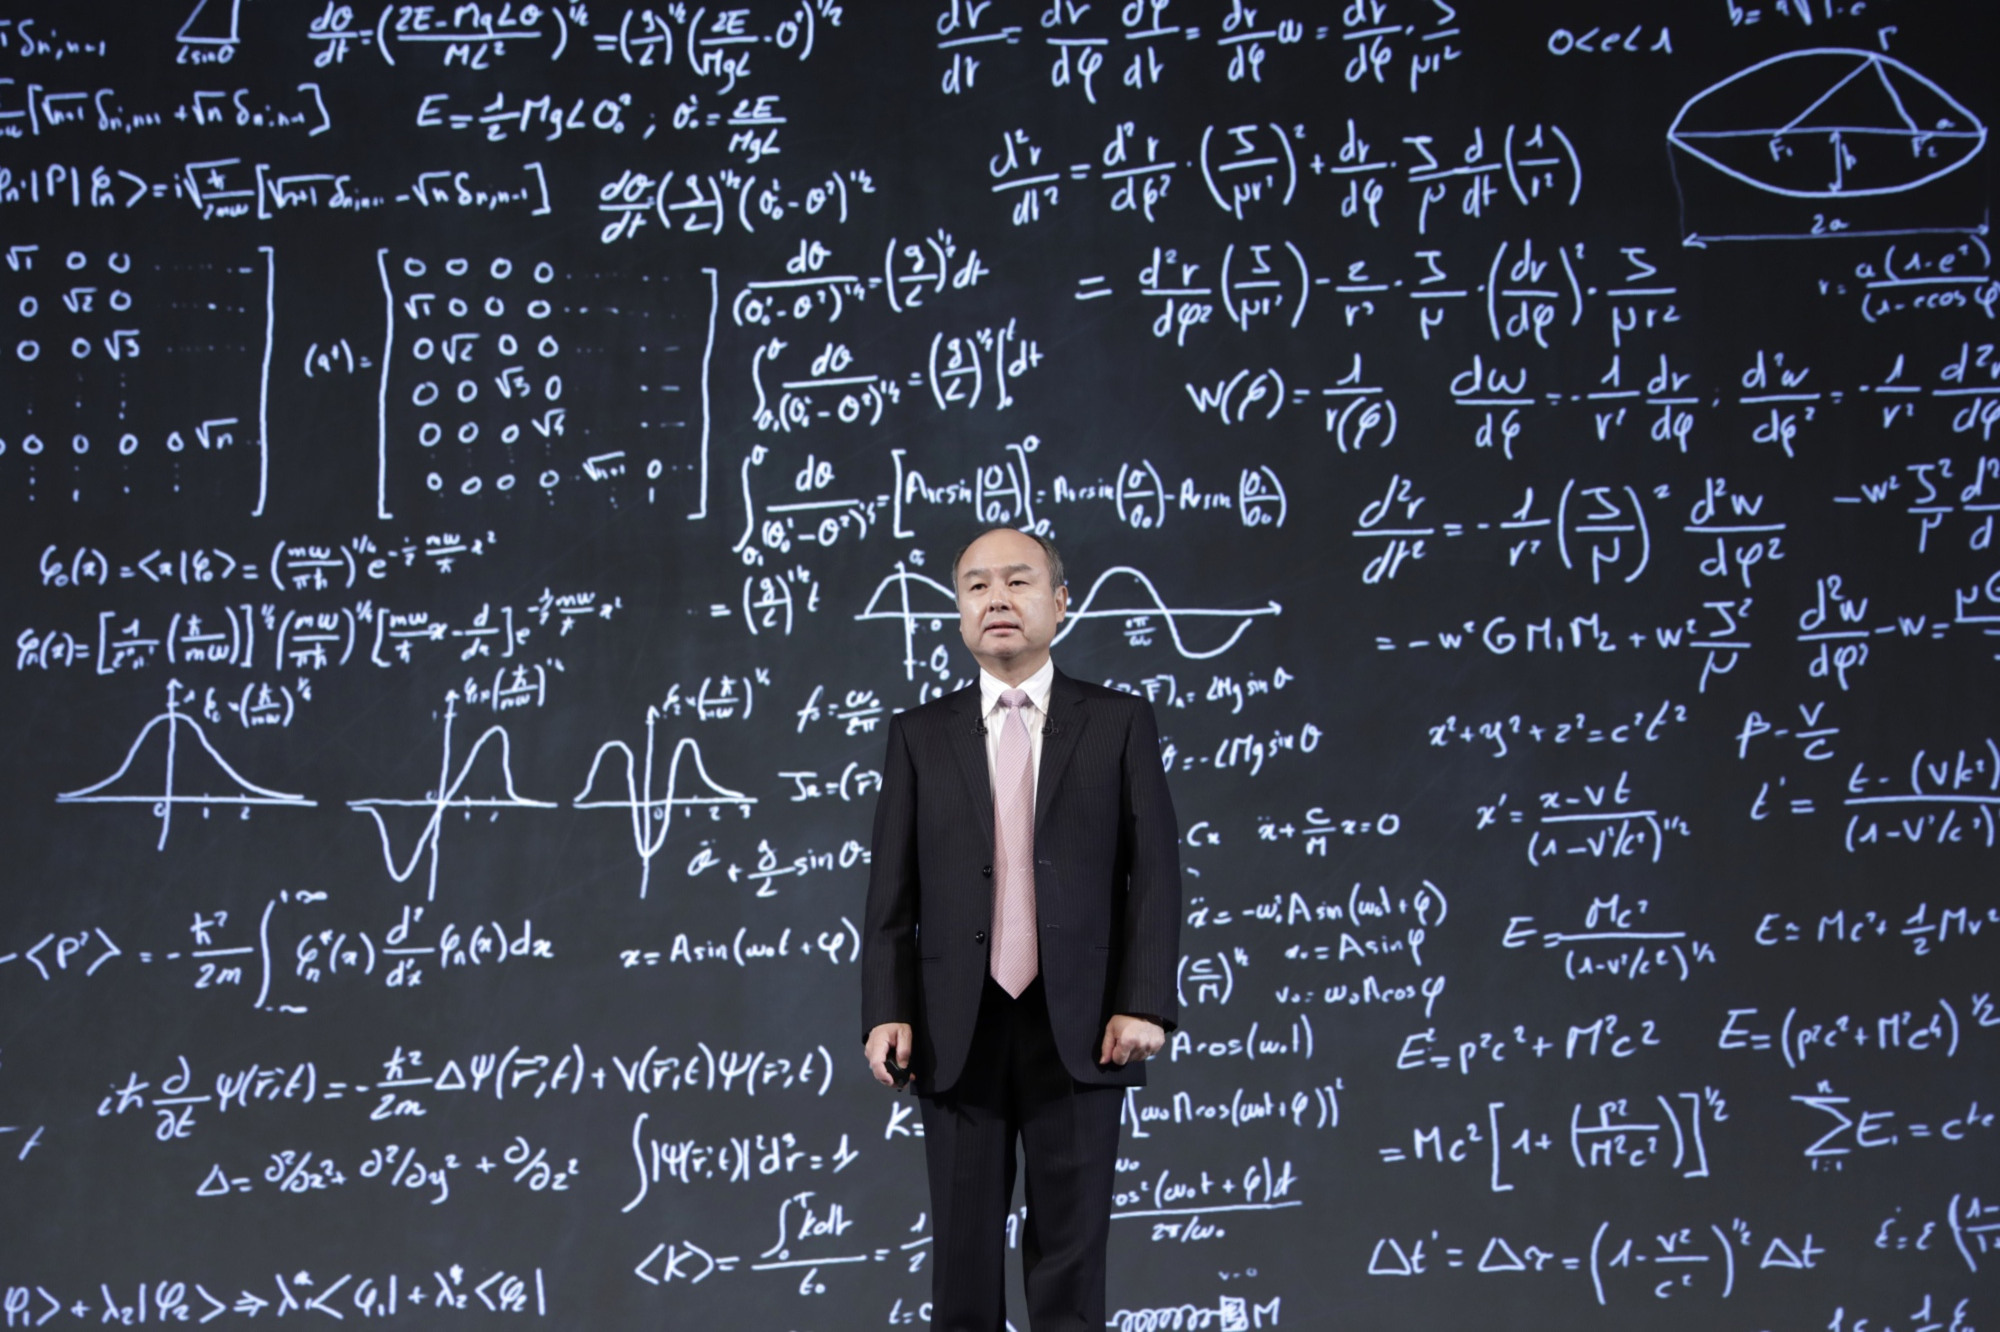 SoftBank's Masayoshi Son seems undeterred by the poor market reception to his marquee investments and says he still has plans to raise another massive investment fund. | BLOOMBERG